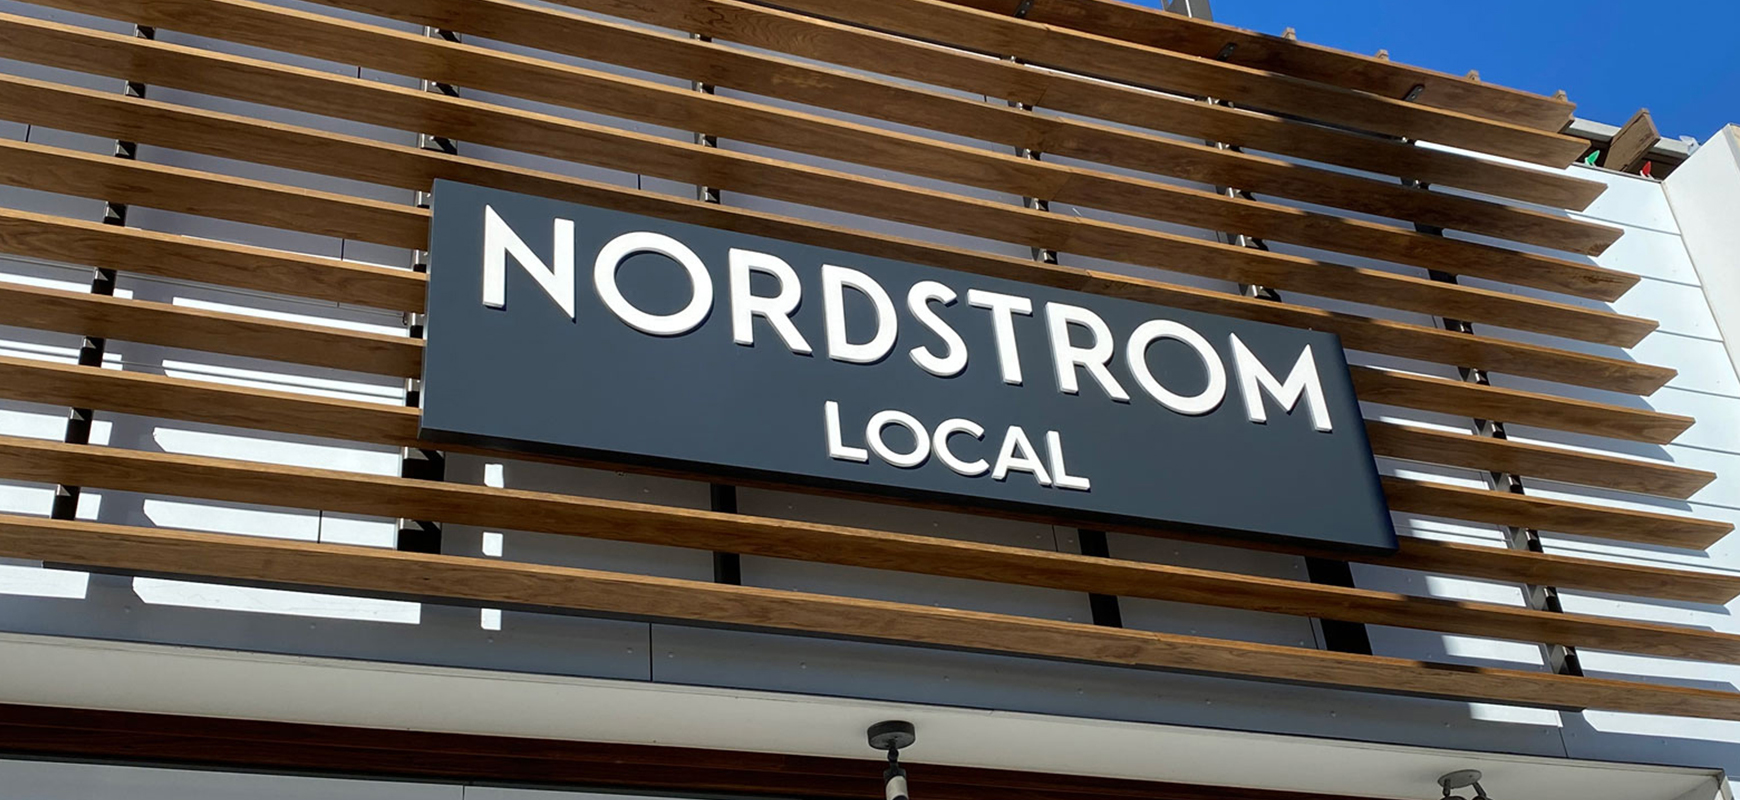 Nordstrom Local commercial building sign with white letters made of aluminum and acrylic